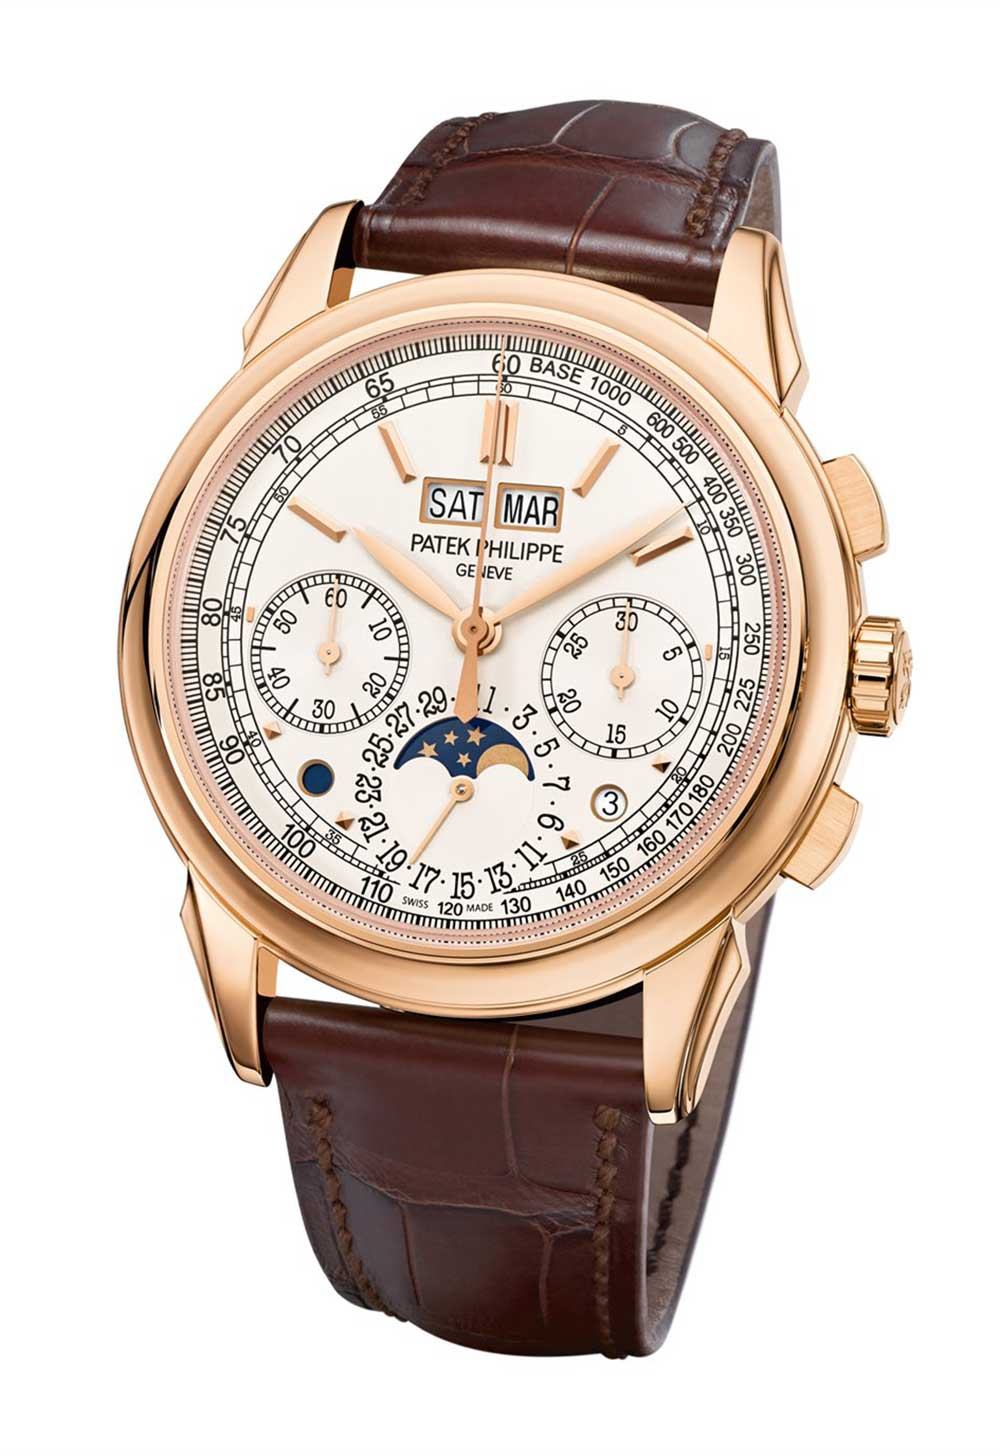 Perpetual Calendar Chronograph : Top ten perpetual calendar chronograph watches time